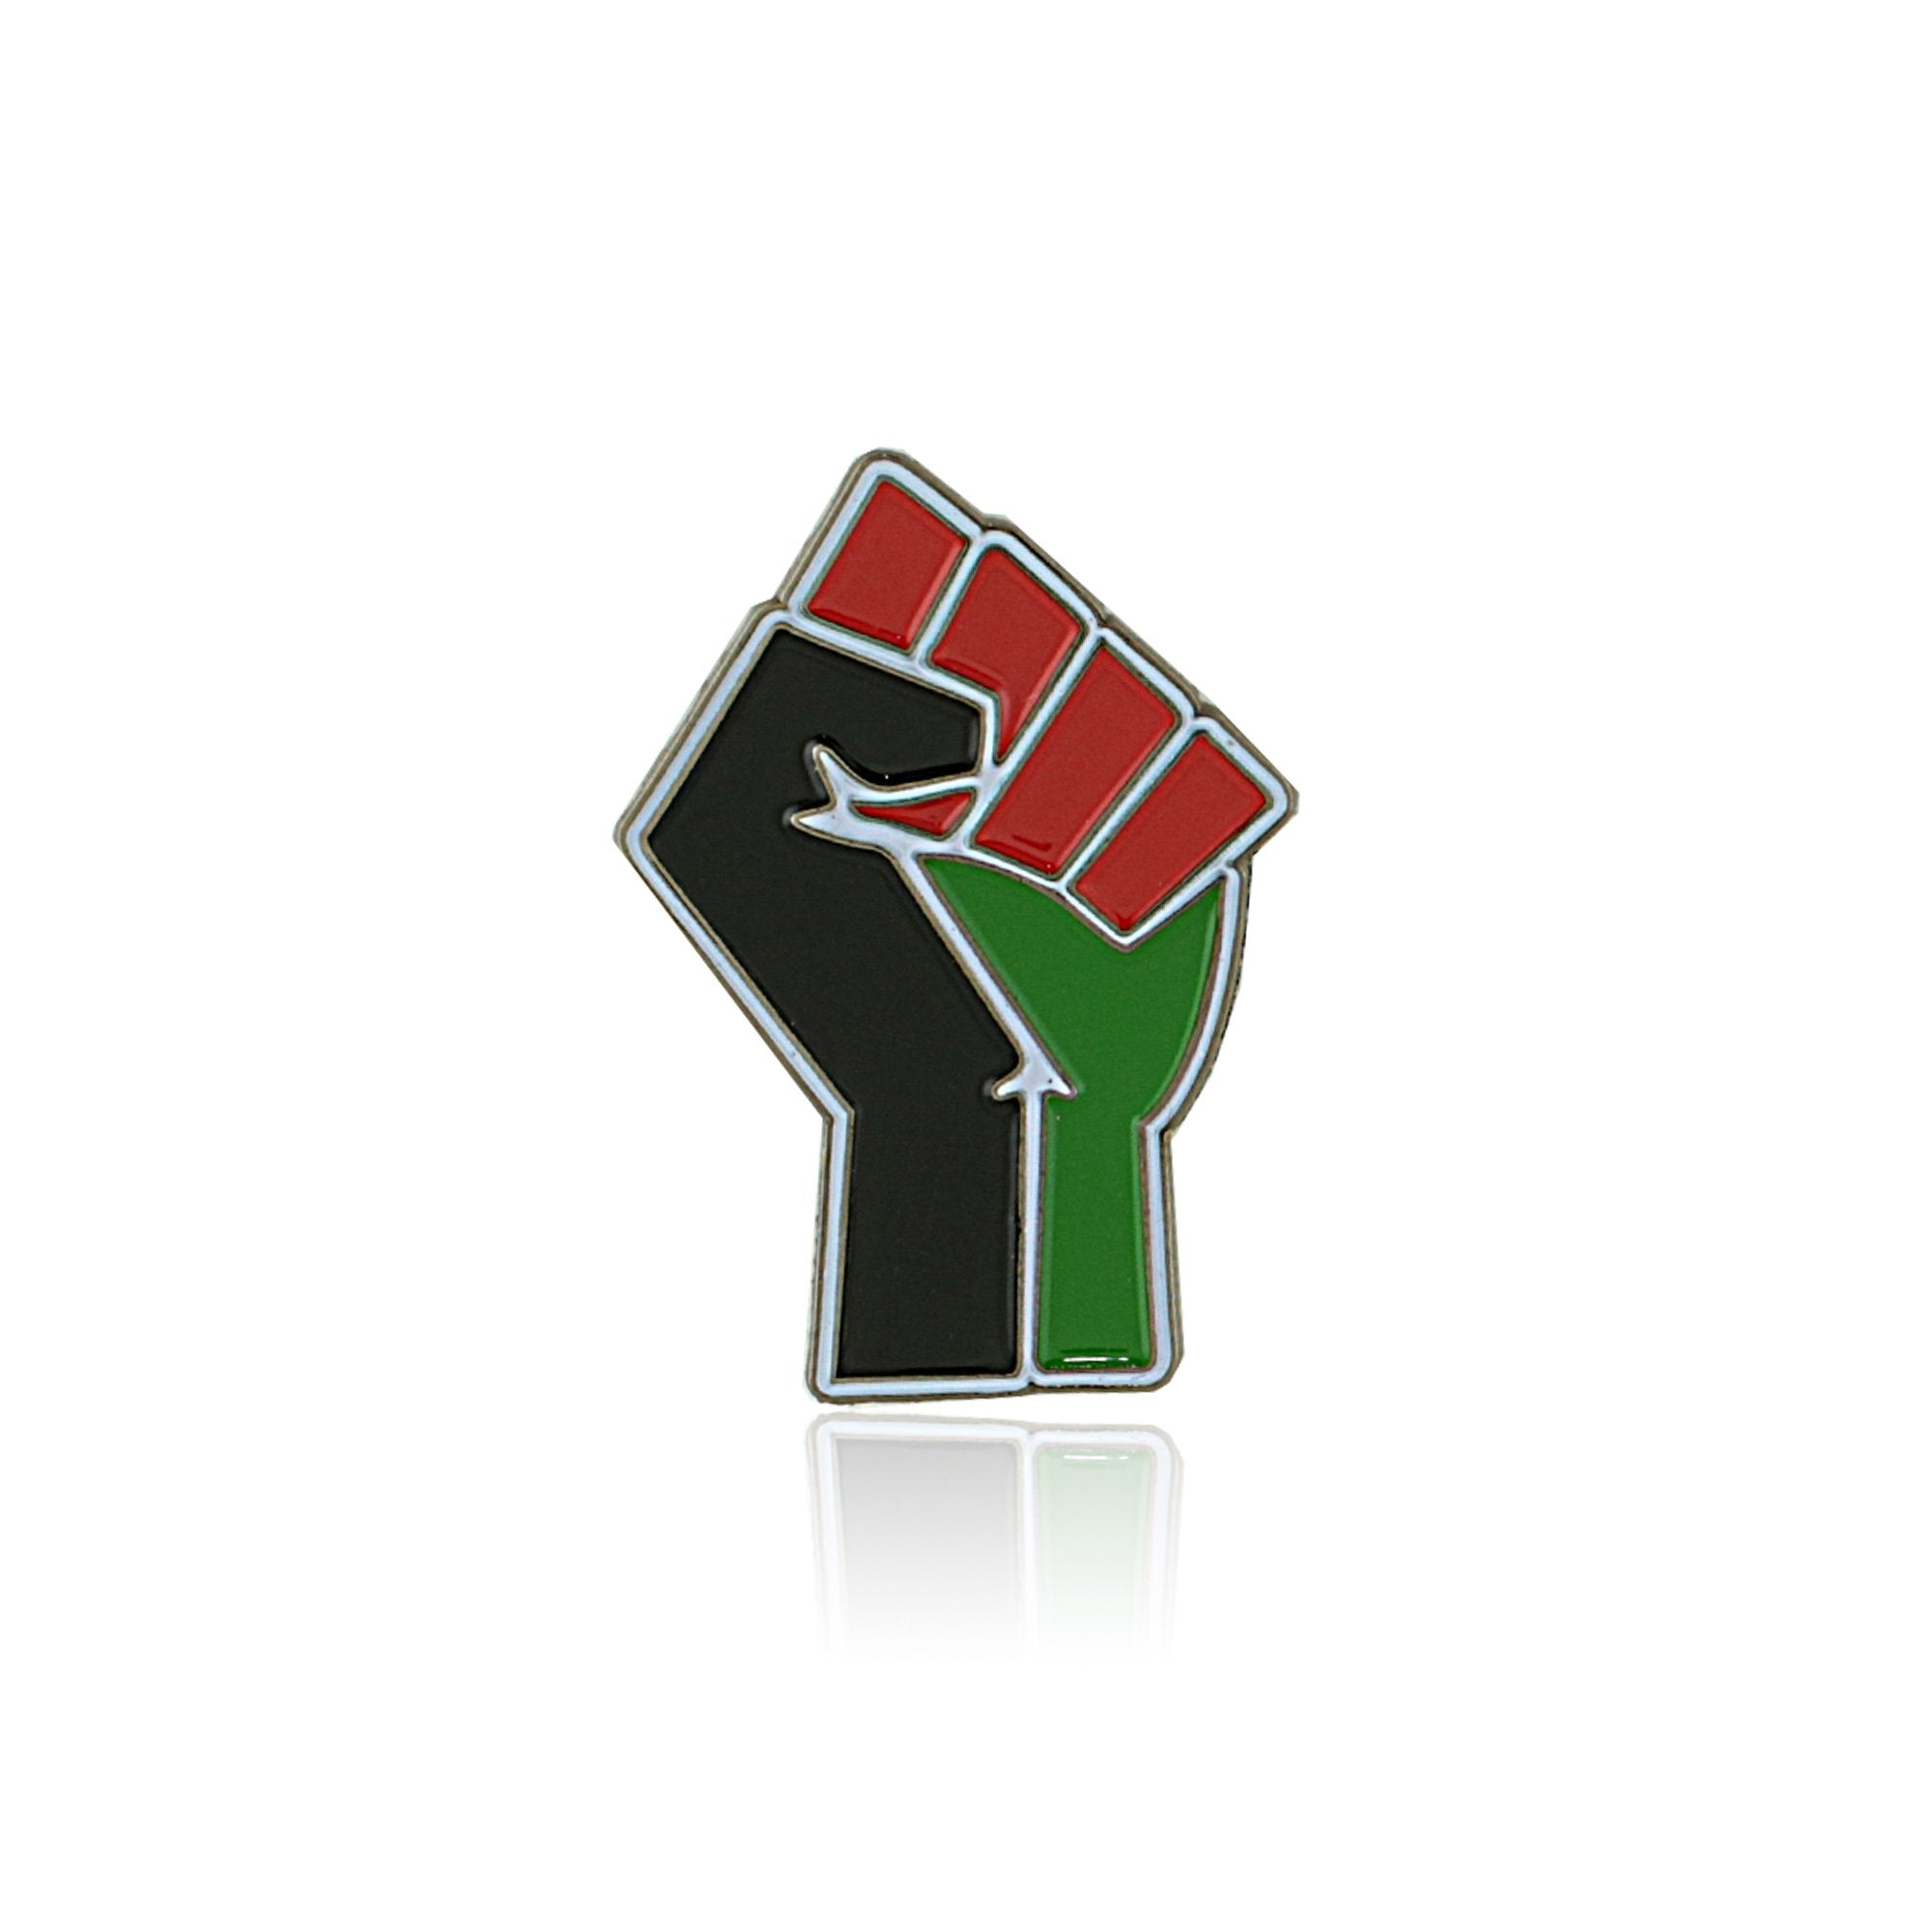 Resist: African American Liberation (Black Power Fist) Lapel Pin by RBG Forever